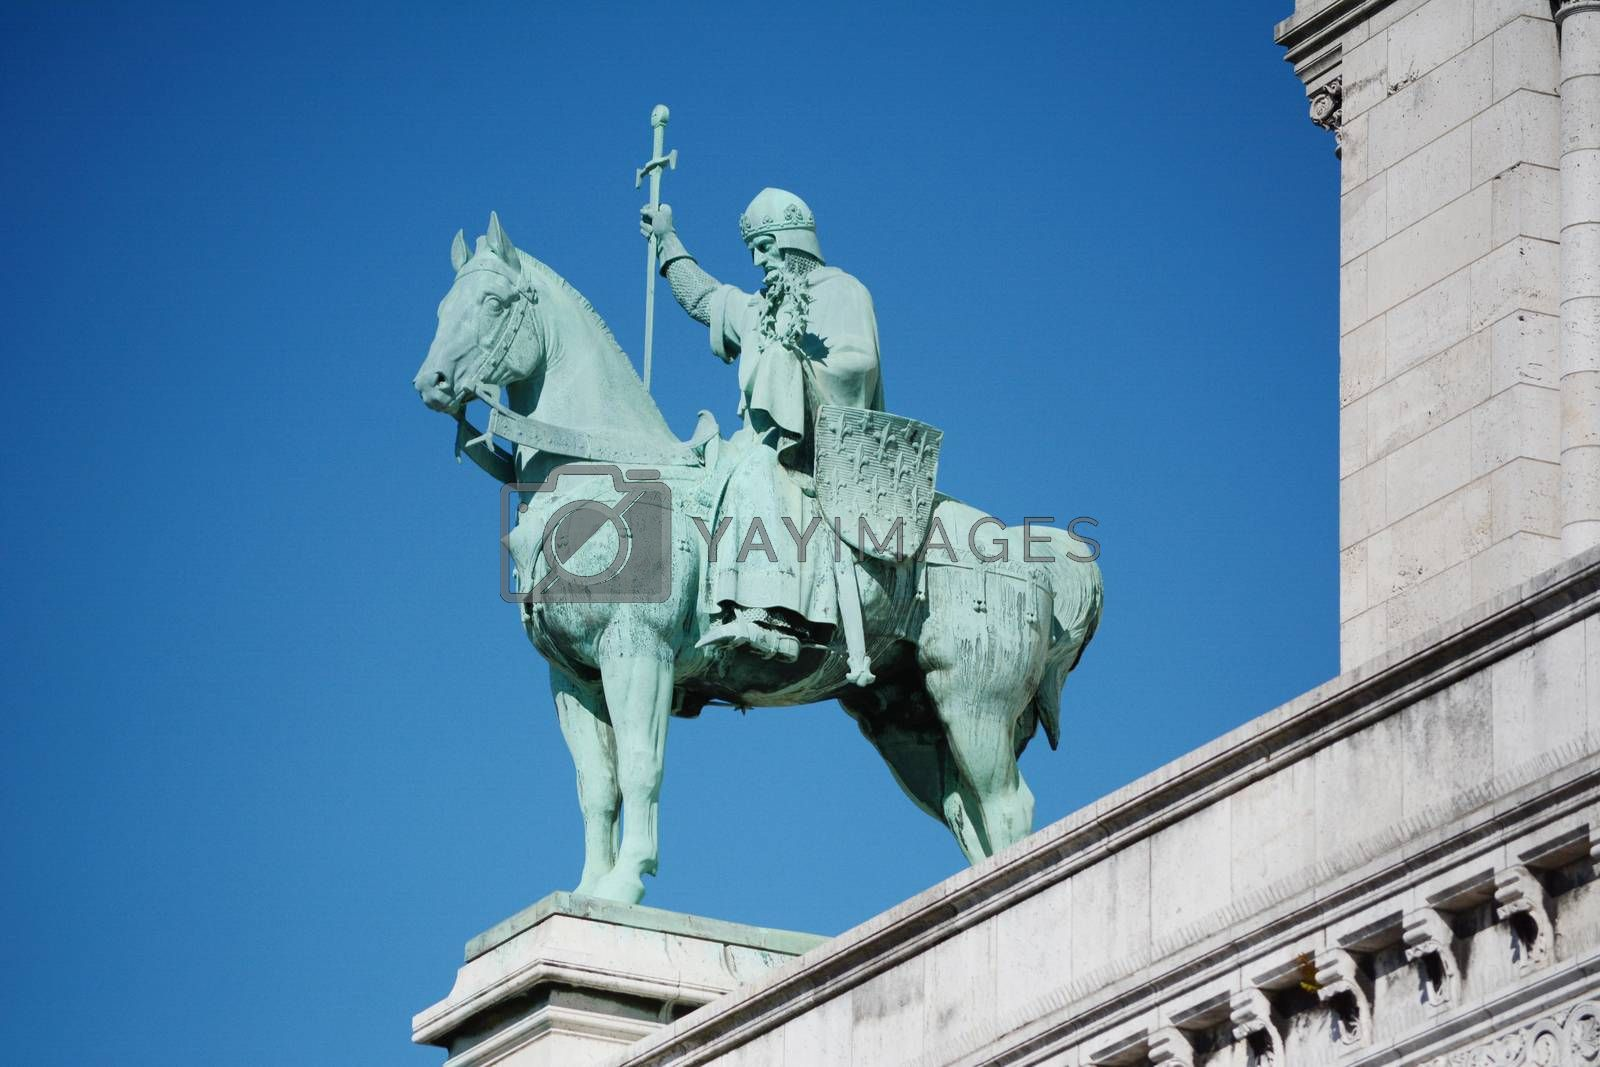 Bronze equestrian statue of King Saint Louis IX on the exterior of the Sacre Coeur basilica in Paris, France